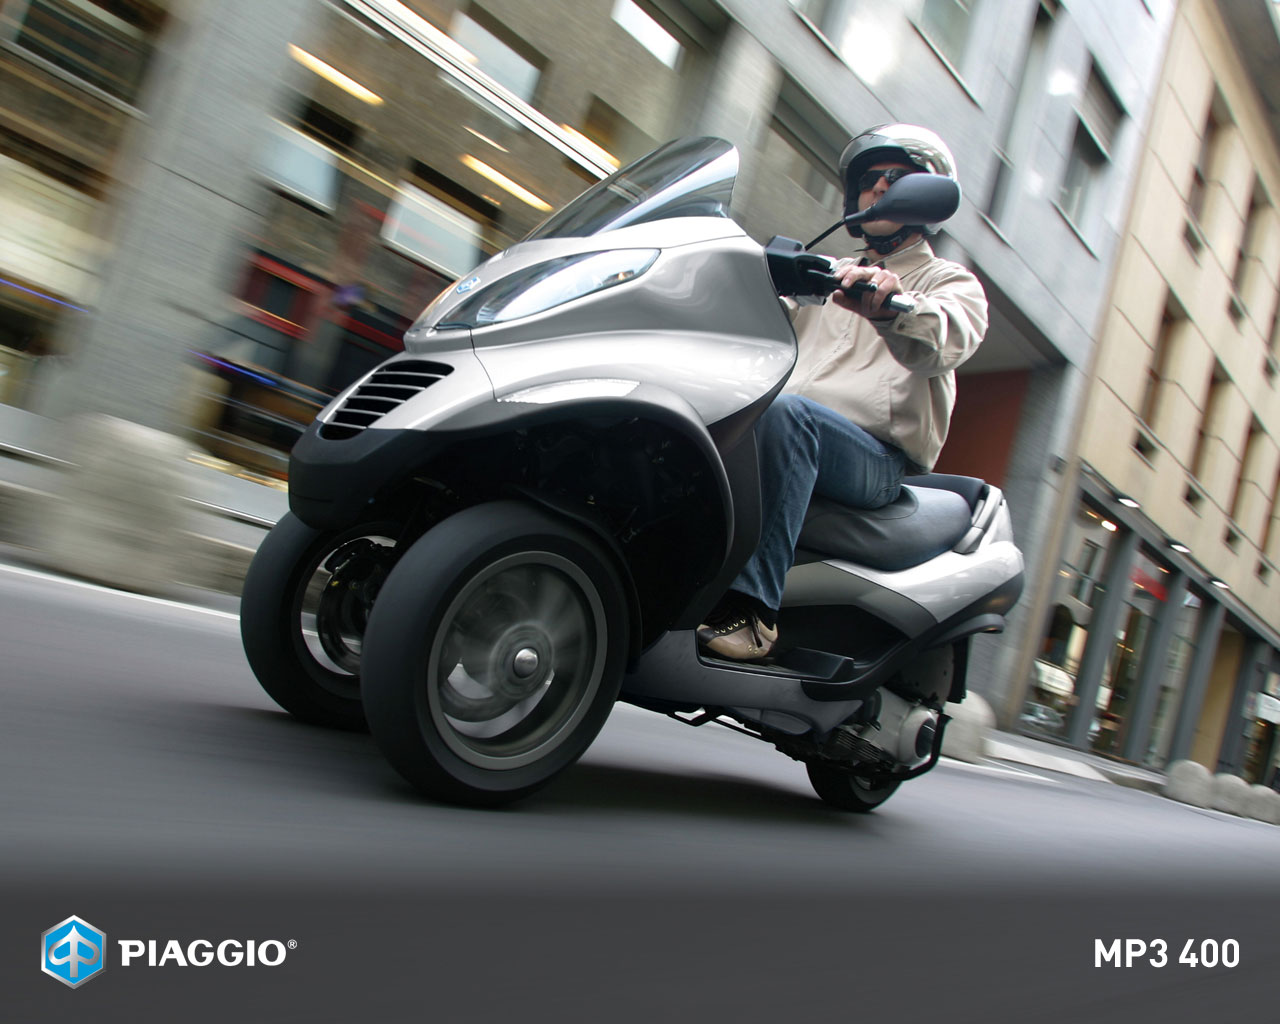 Piaggio MP3 400 images #120072